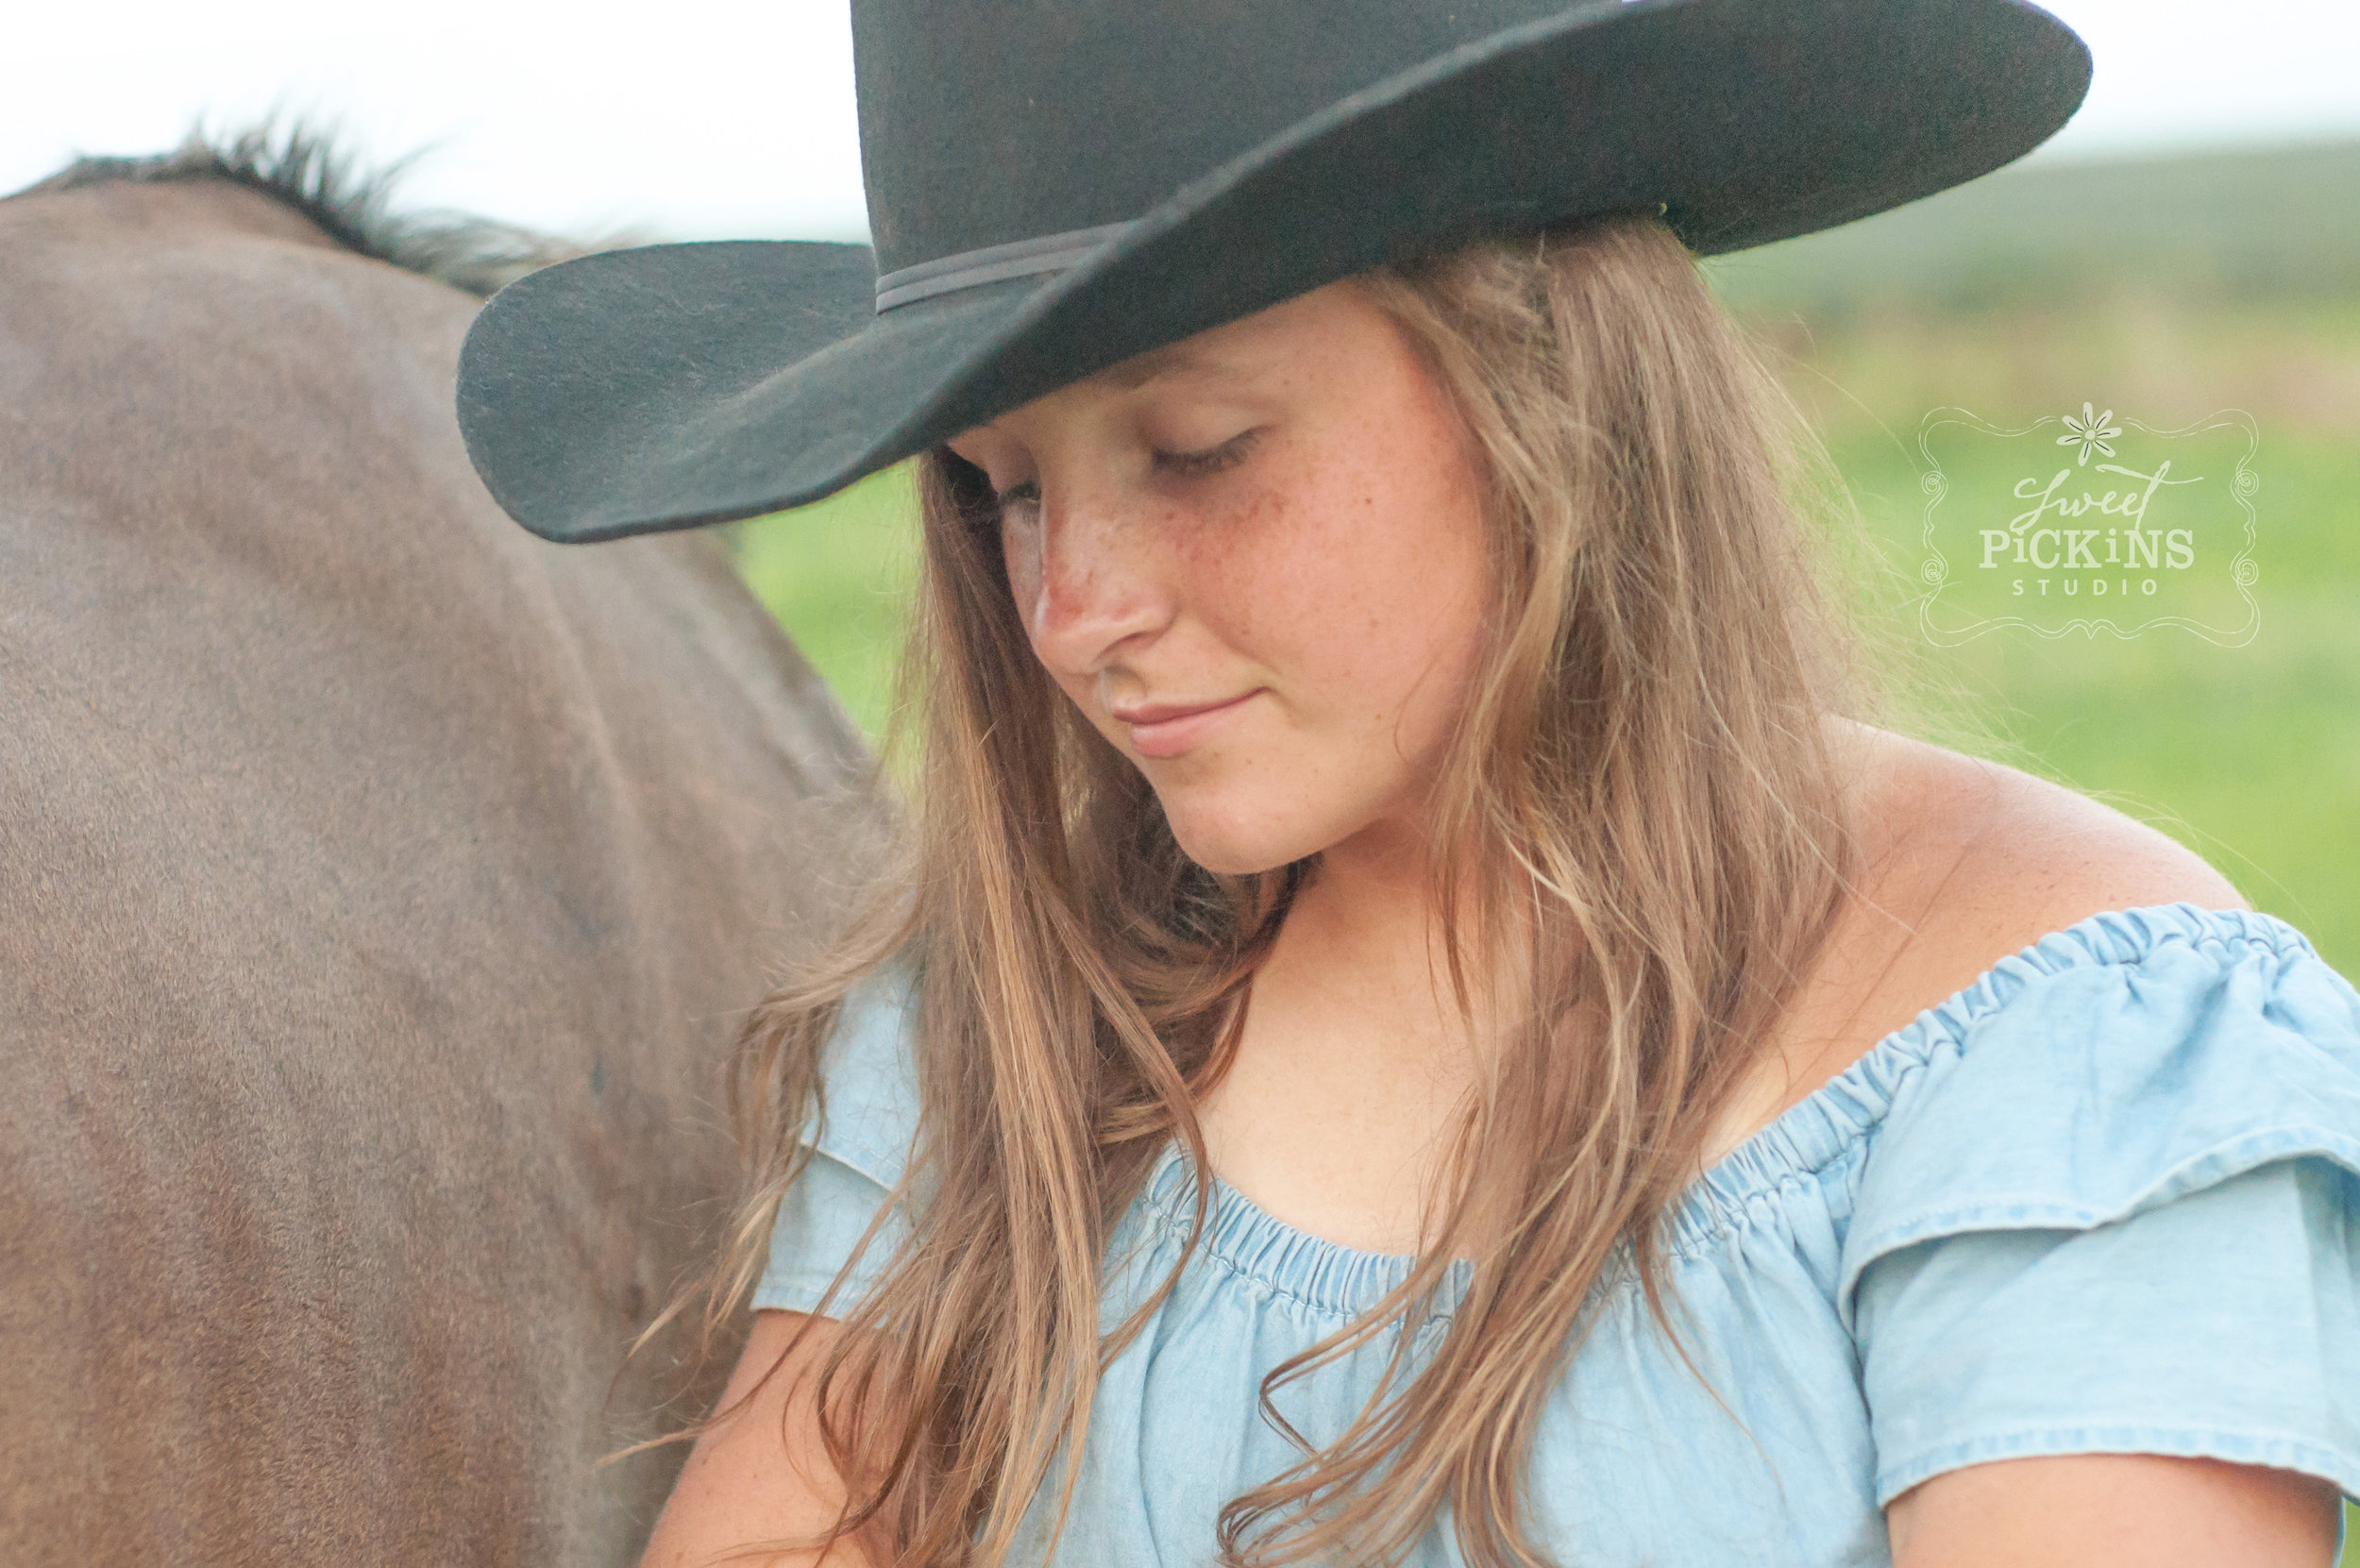 Peru, Indiana Horse and Cowgirl Portrait Photography Session by Sweet Pickins Studio